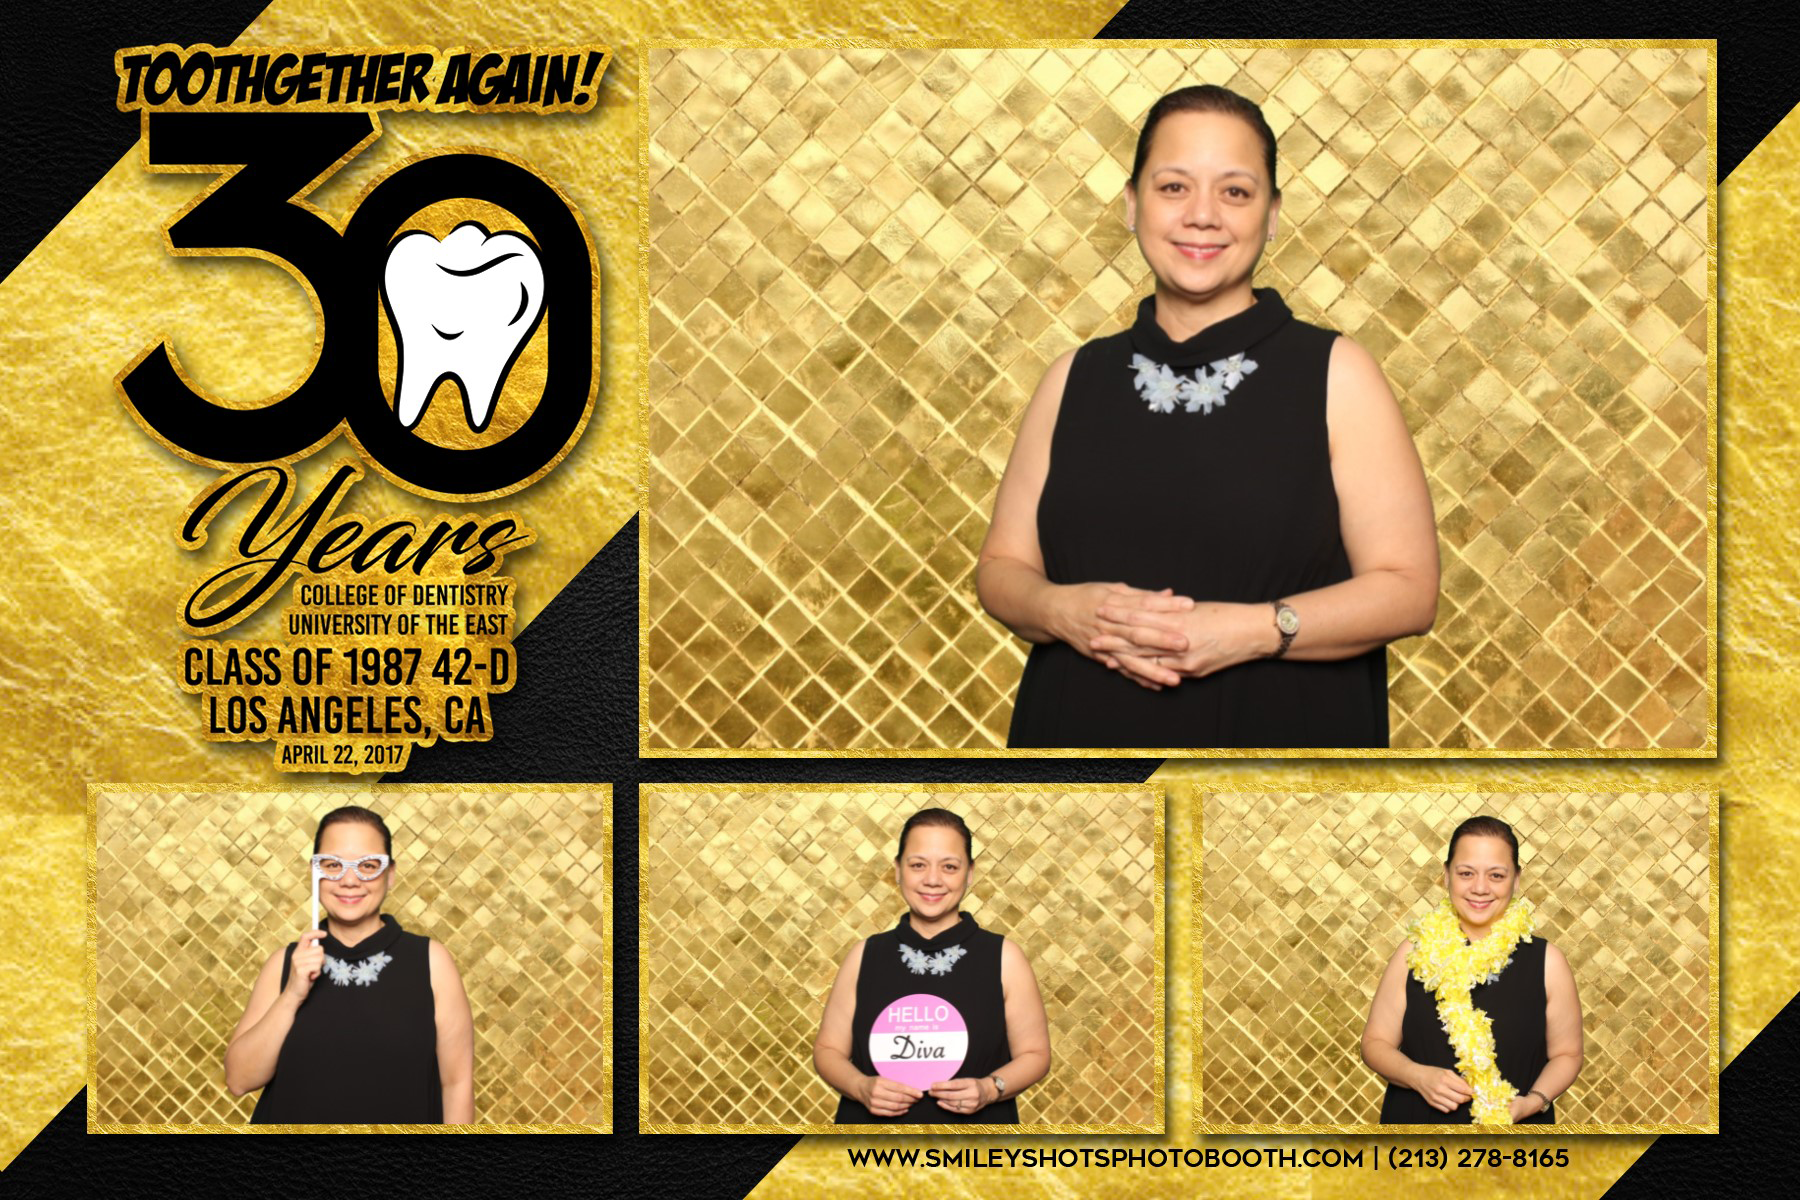 30th Years Dental UE Smiley Shots Photo Booth Photobooth (20).png